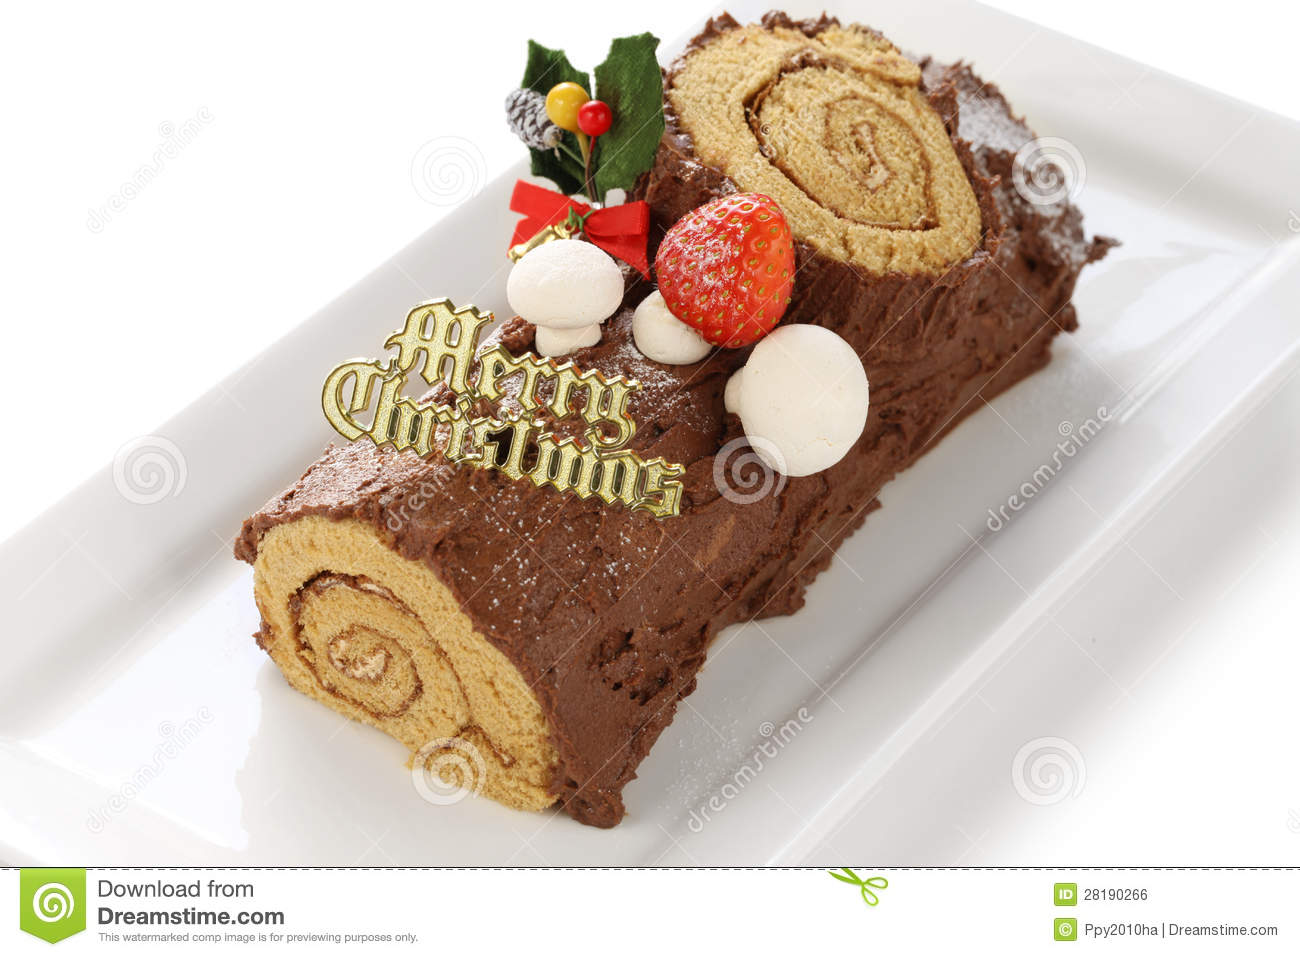 Decoration Buche De Noel Maison Buche De Noel Fait Maison Photo Stock Image Du Chocolat